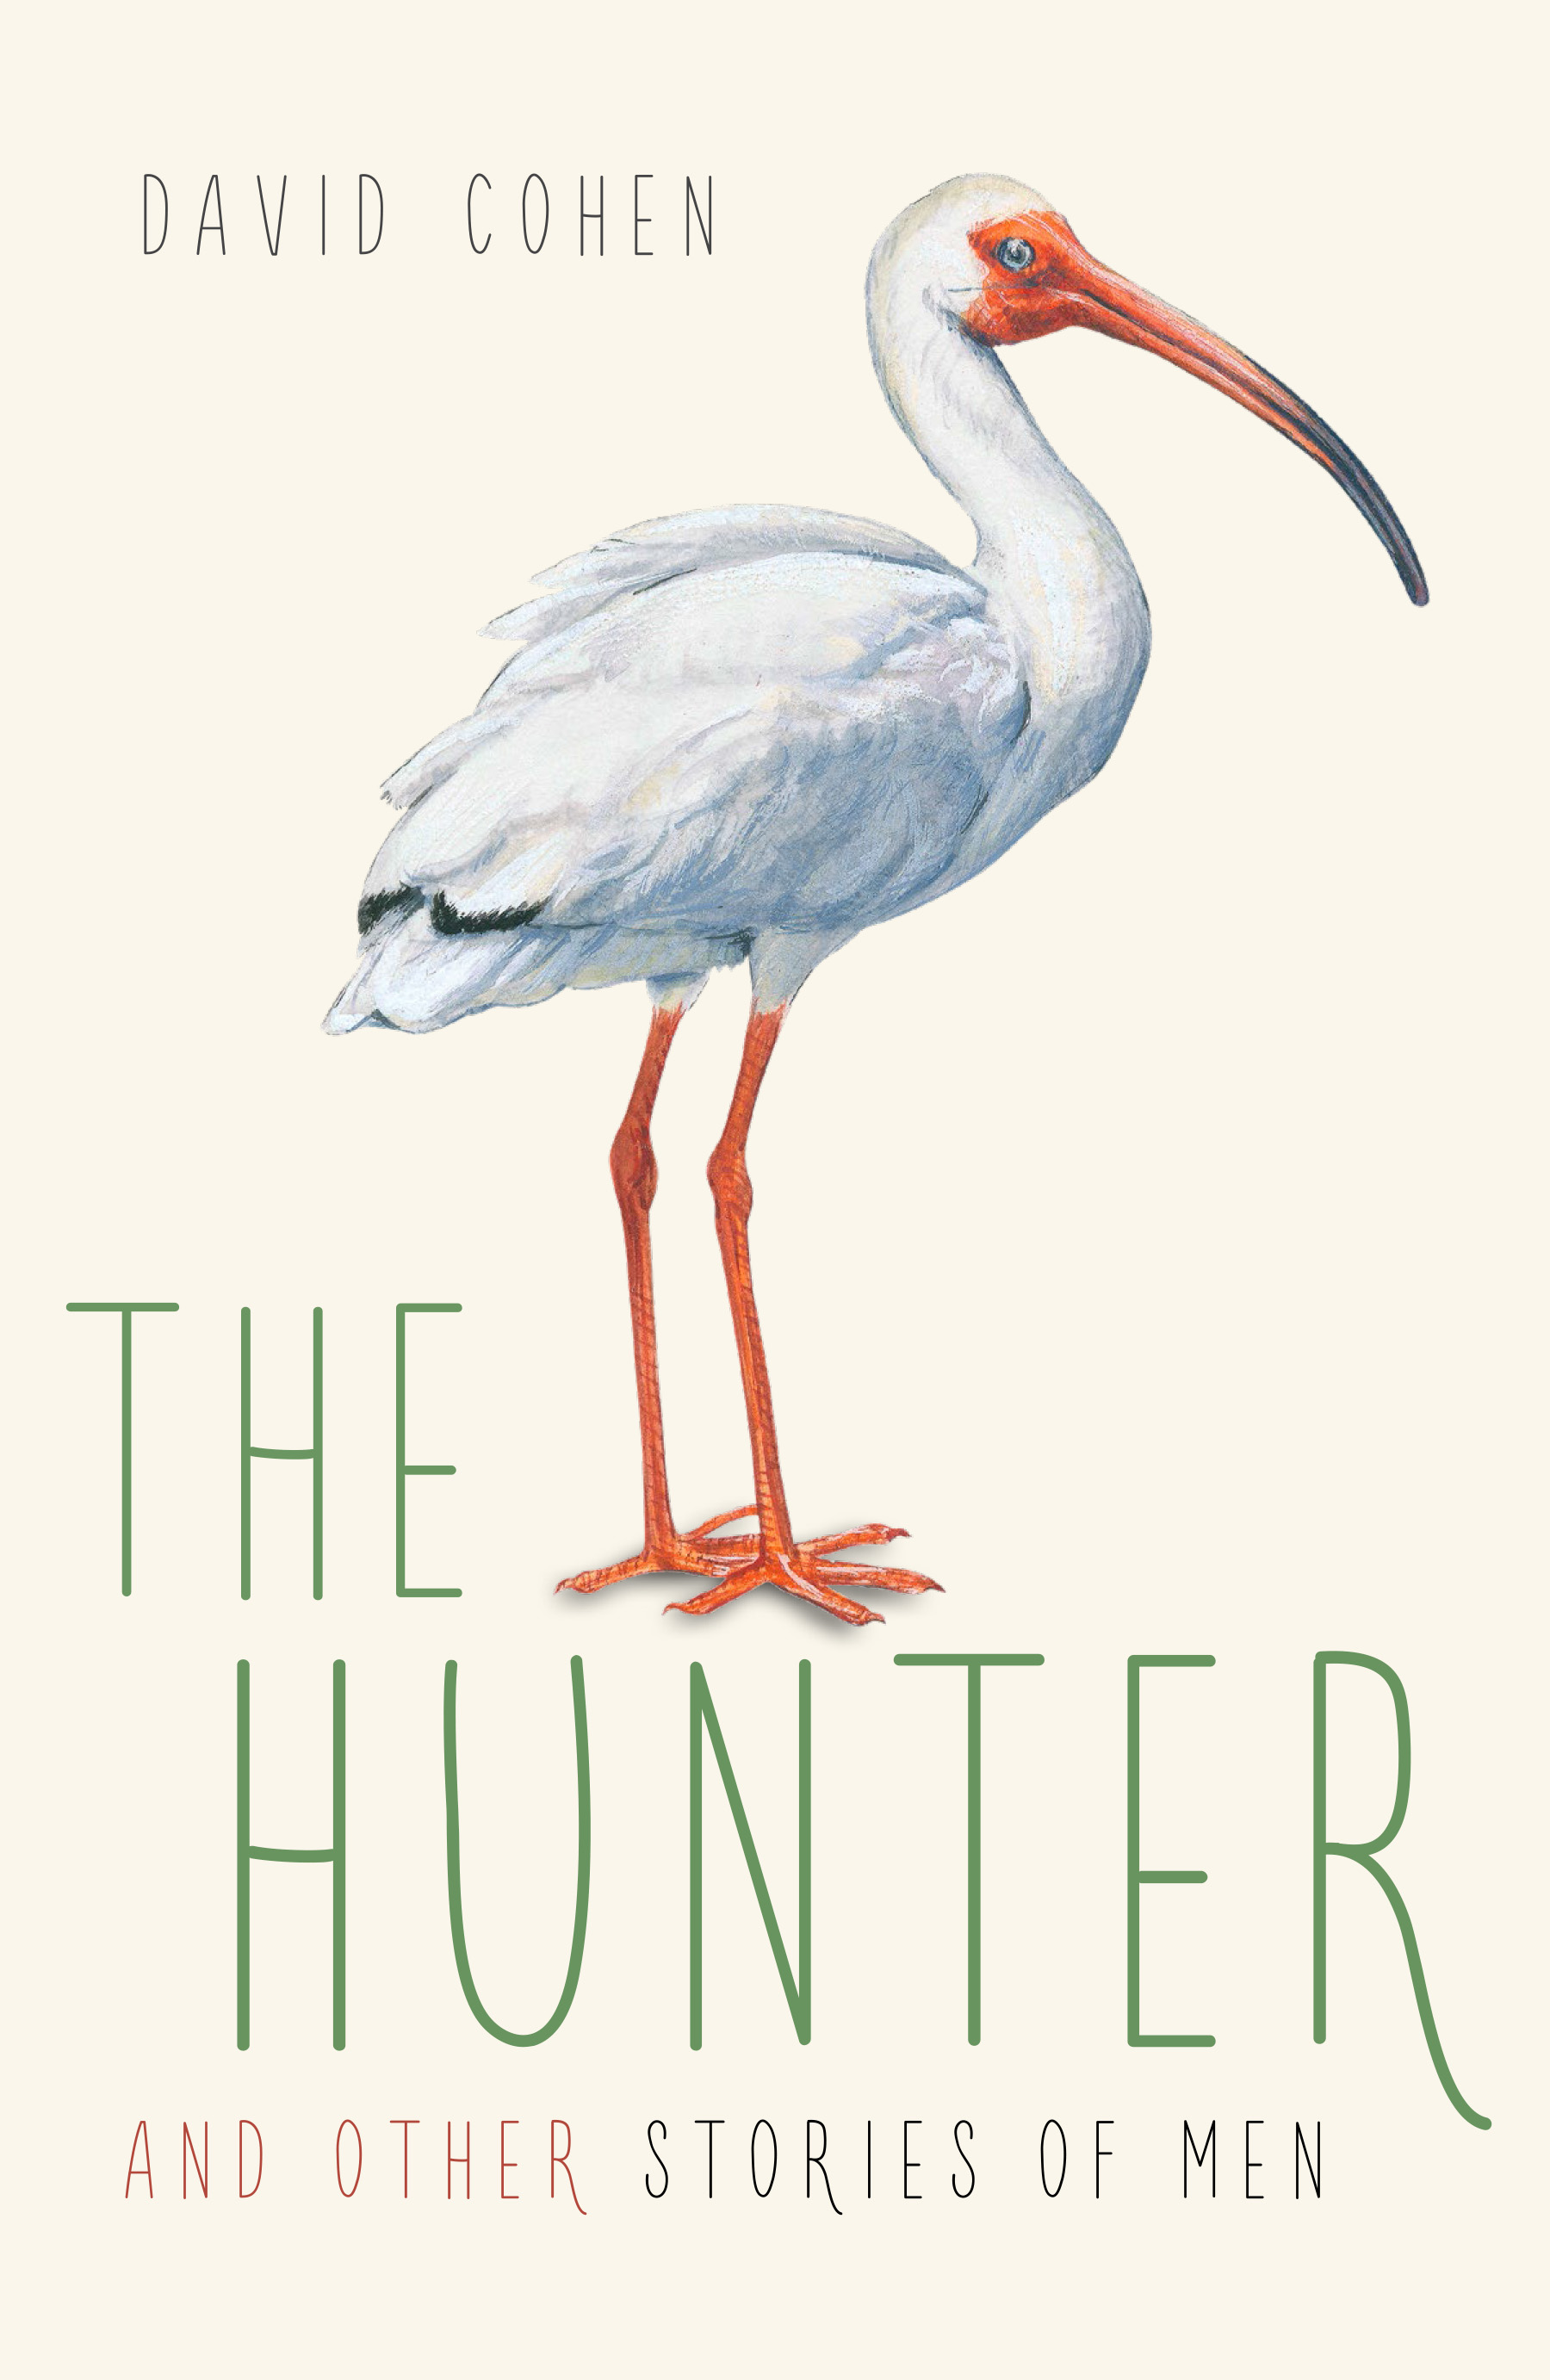 Launch of The Hunter by David Cohen